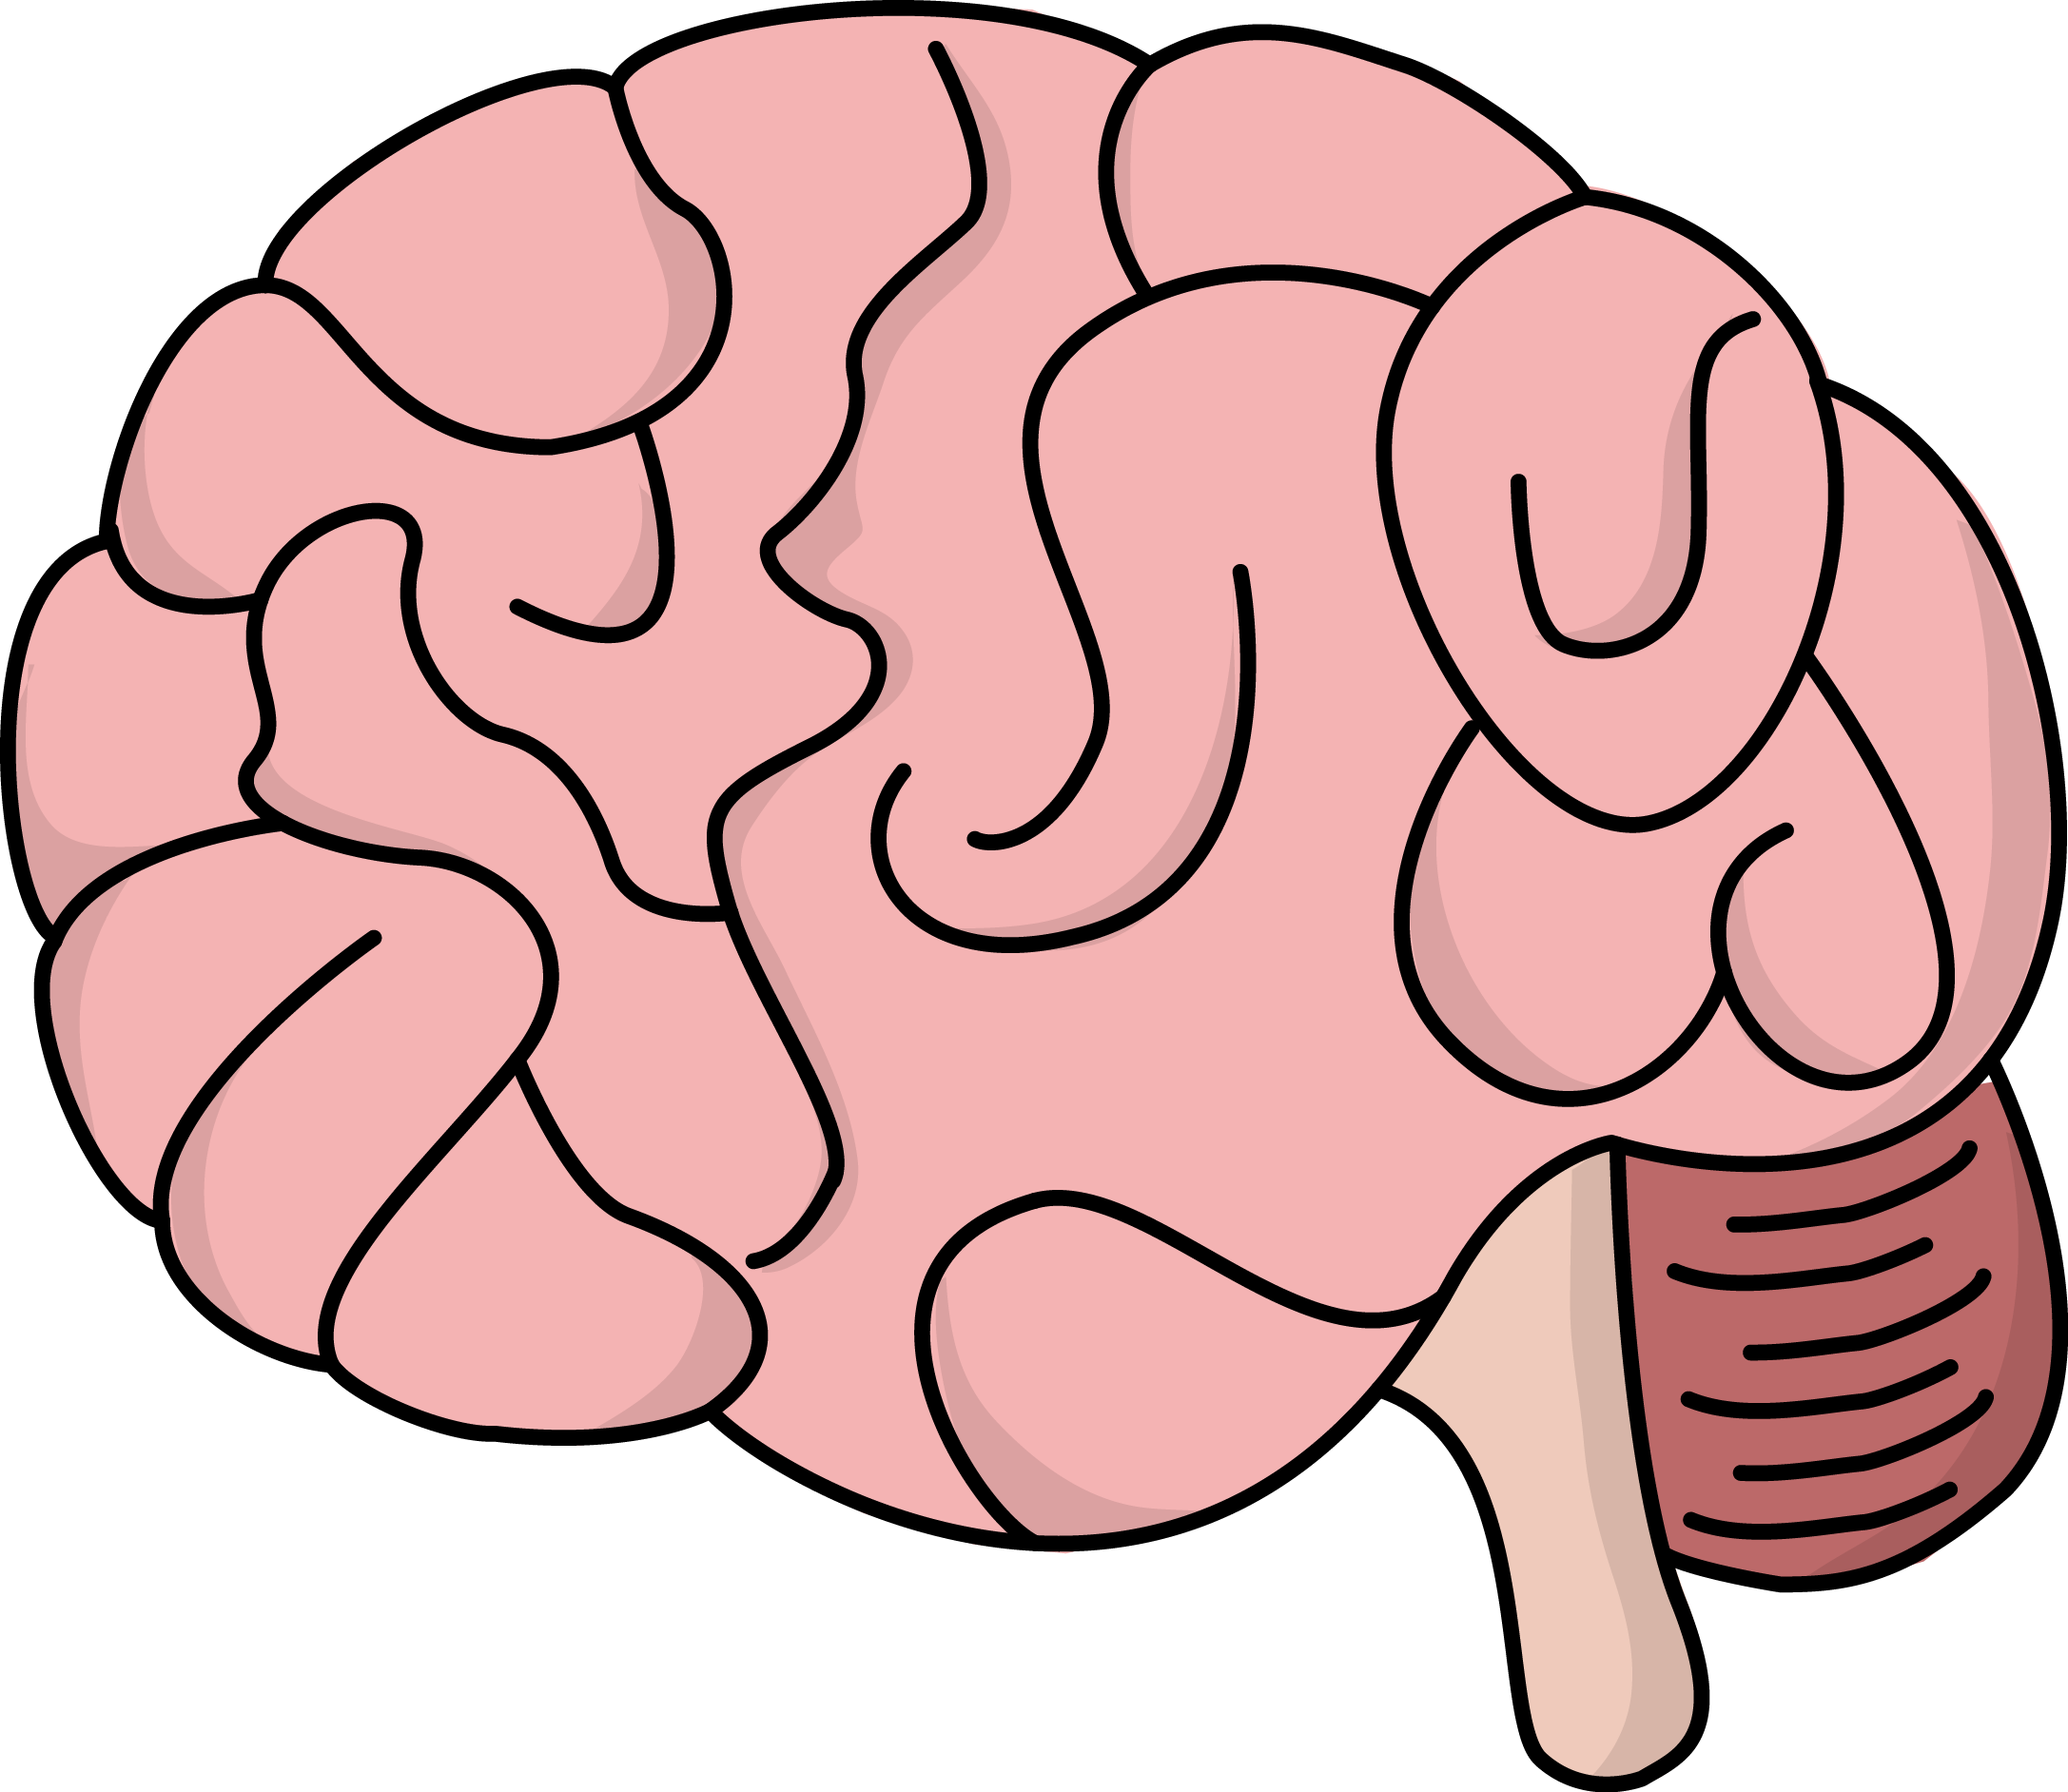 Clipart Of Brain Clip art of Brain Clipart #733 — Clipartwork.